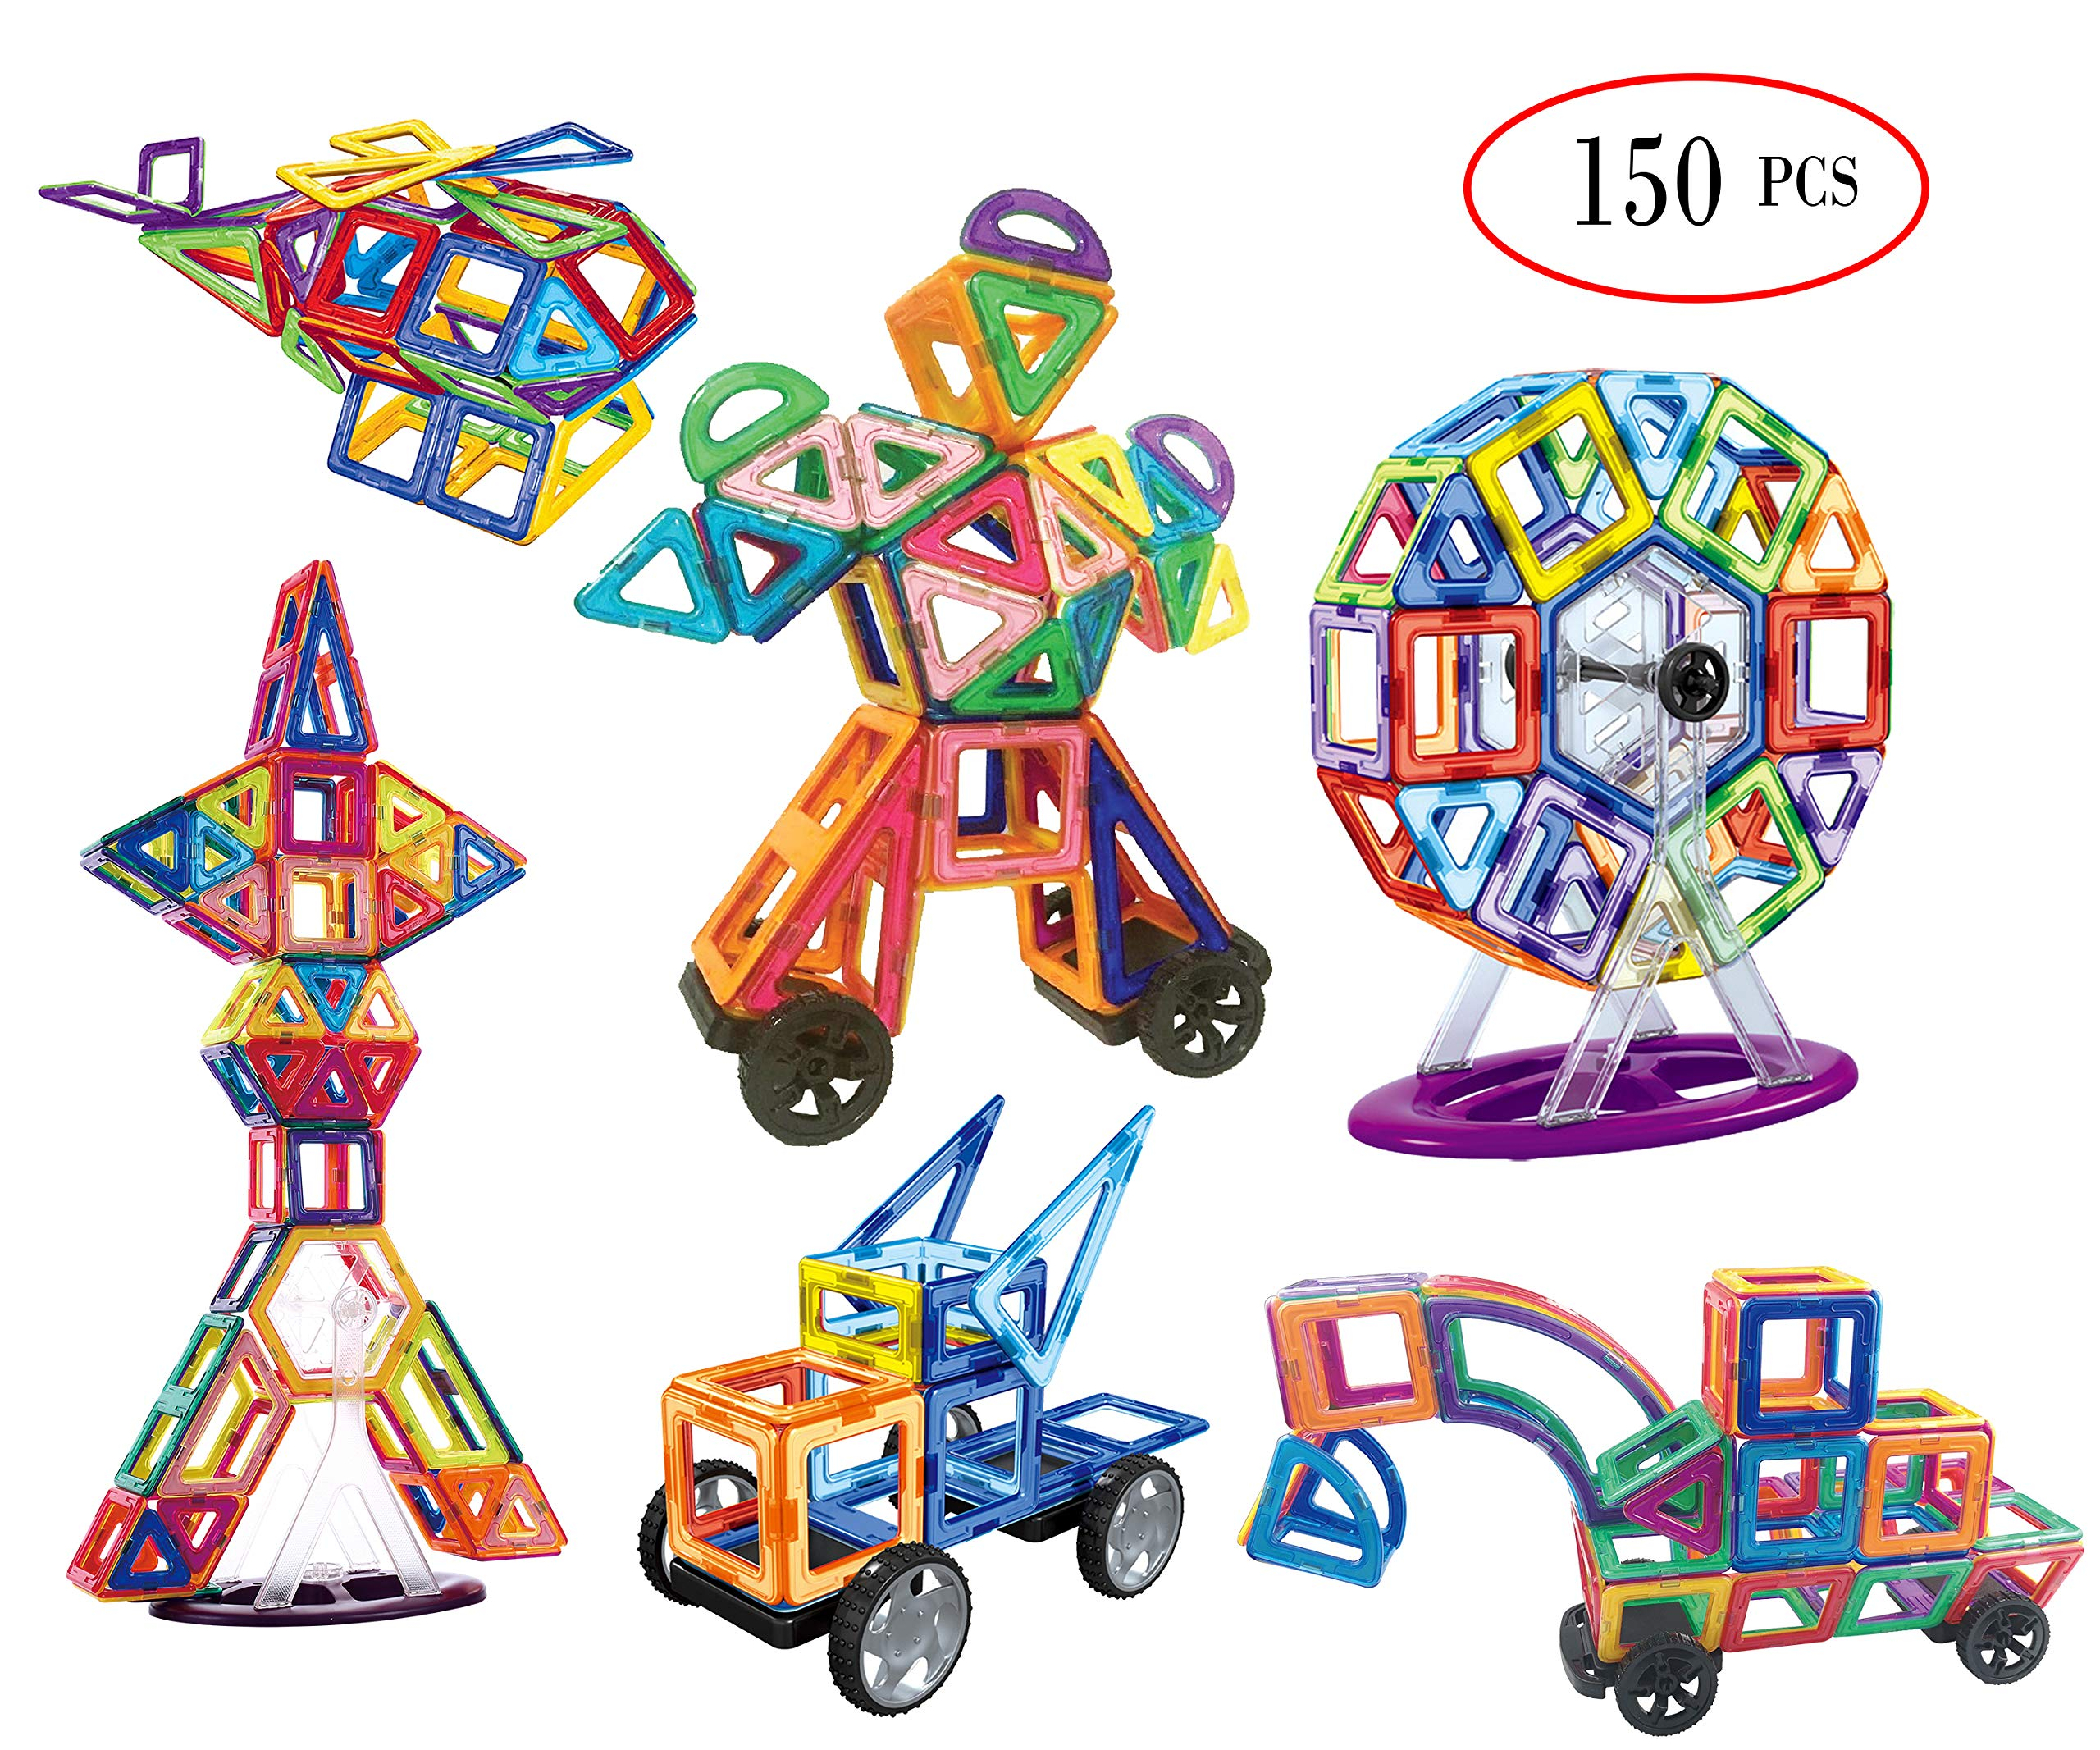 dreambuilderToy Most Complete Magnetic Shapes, Magnetic Tiles, Magnetic Blocks Building Toys Tiles for Kids, Triangles,Squares archs, sectors, semi Circles, Diamonds,Trapezoid etc(150 PC Set) by dreambuilderToy